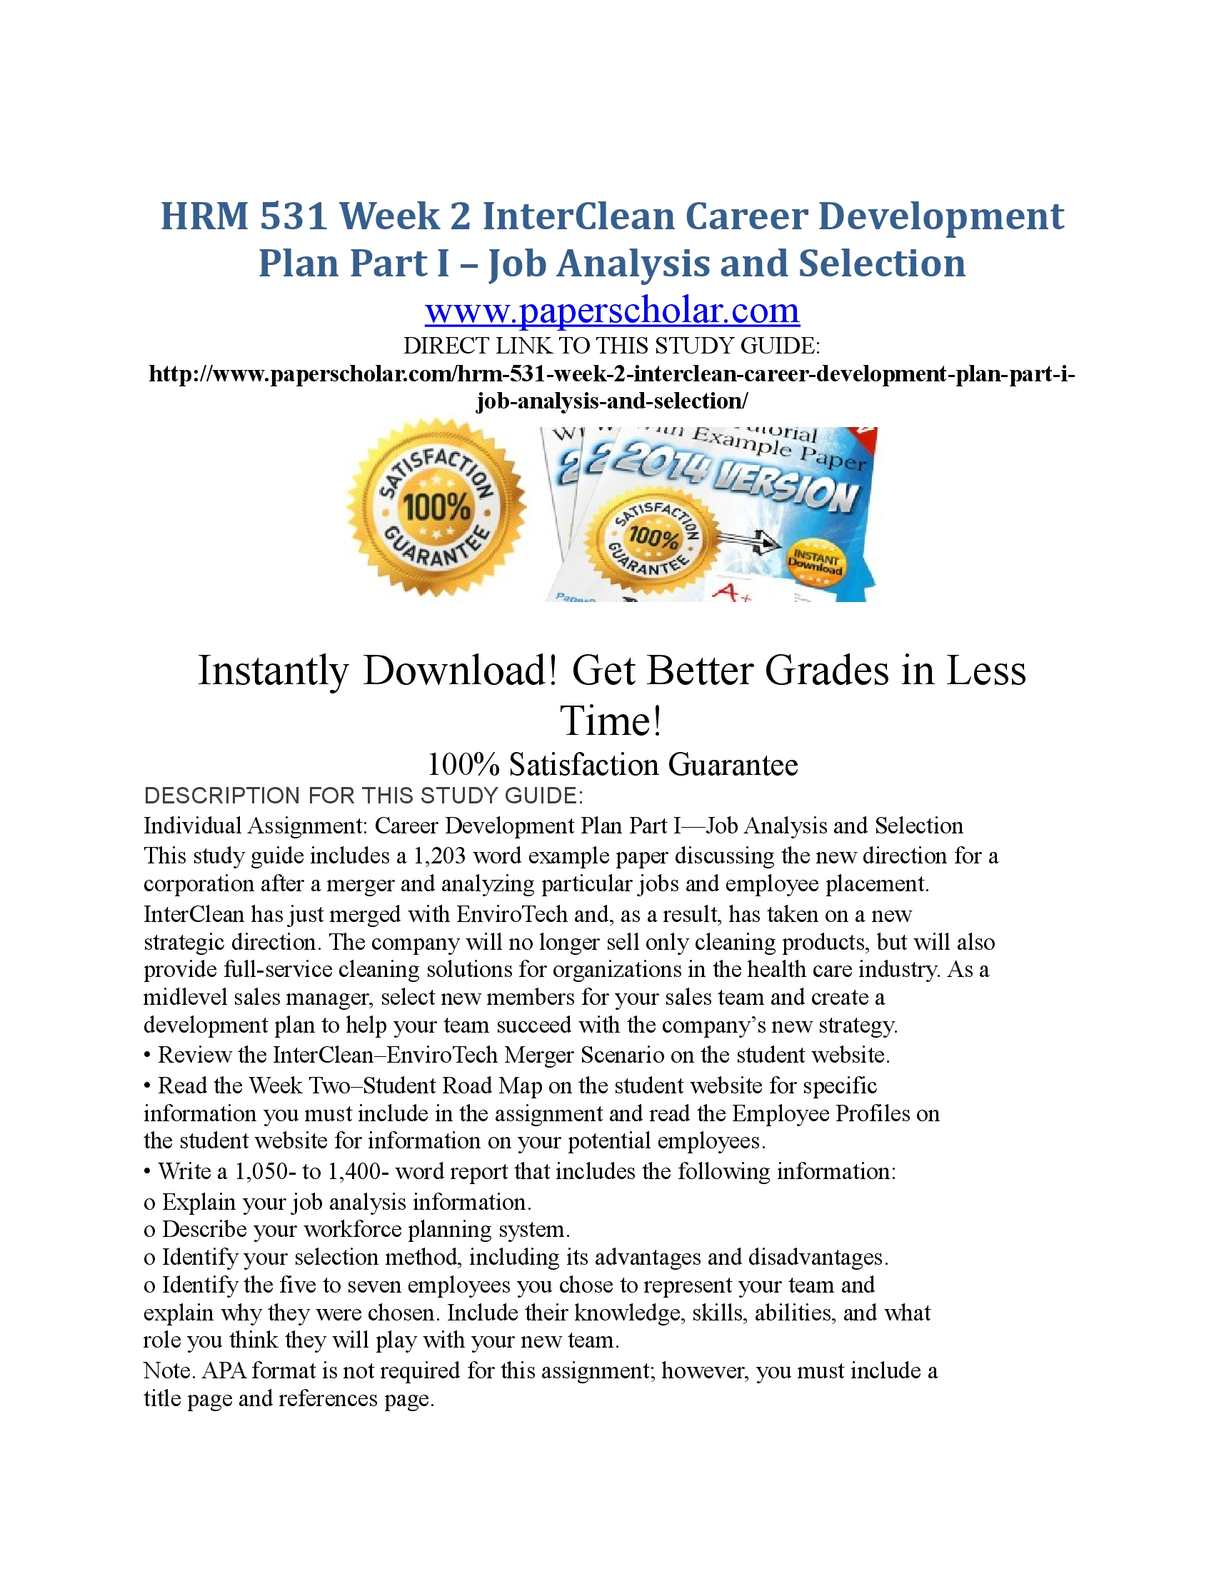 hrm 531 career development plan